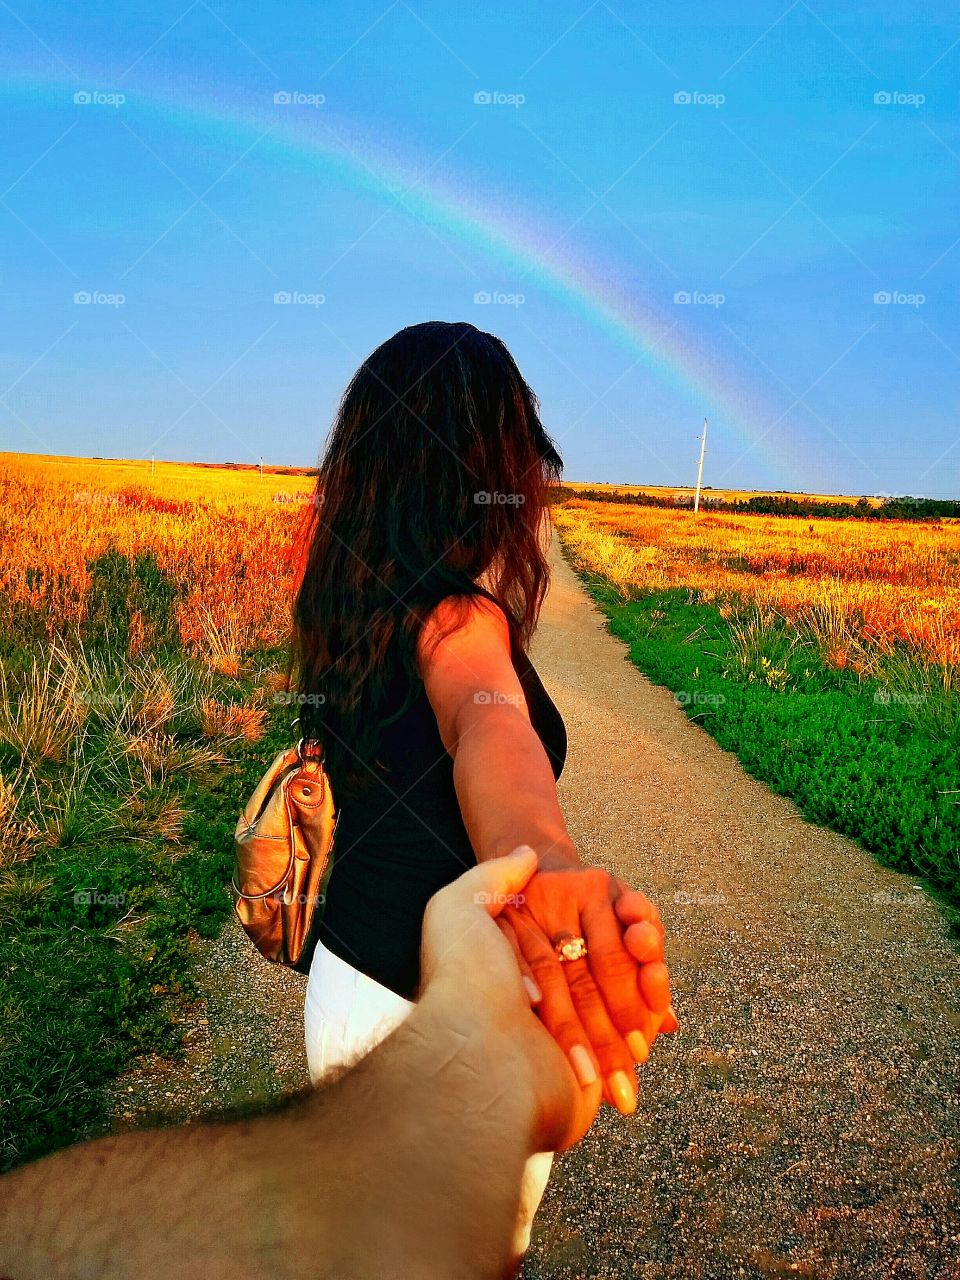 Follow me into the rainbow. After the rain comes the rainbow ...